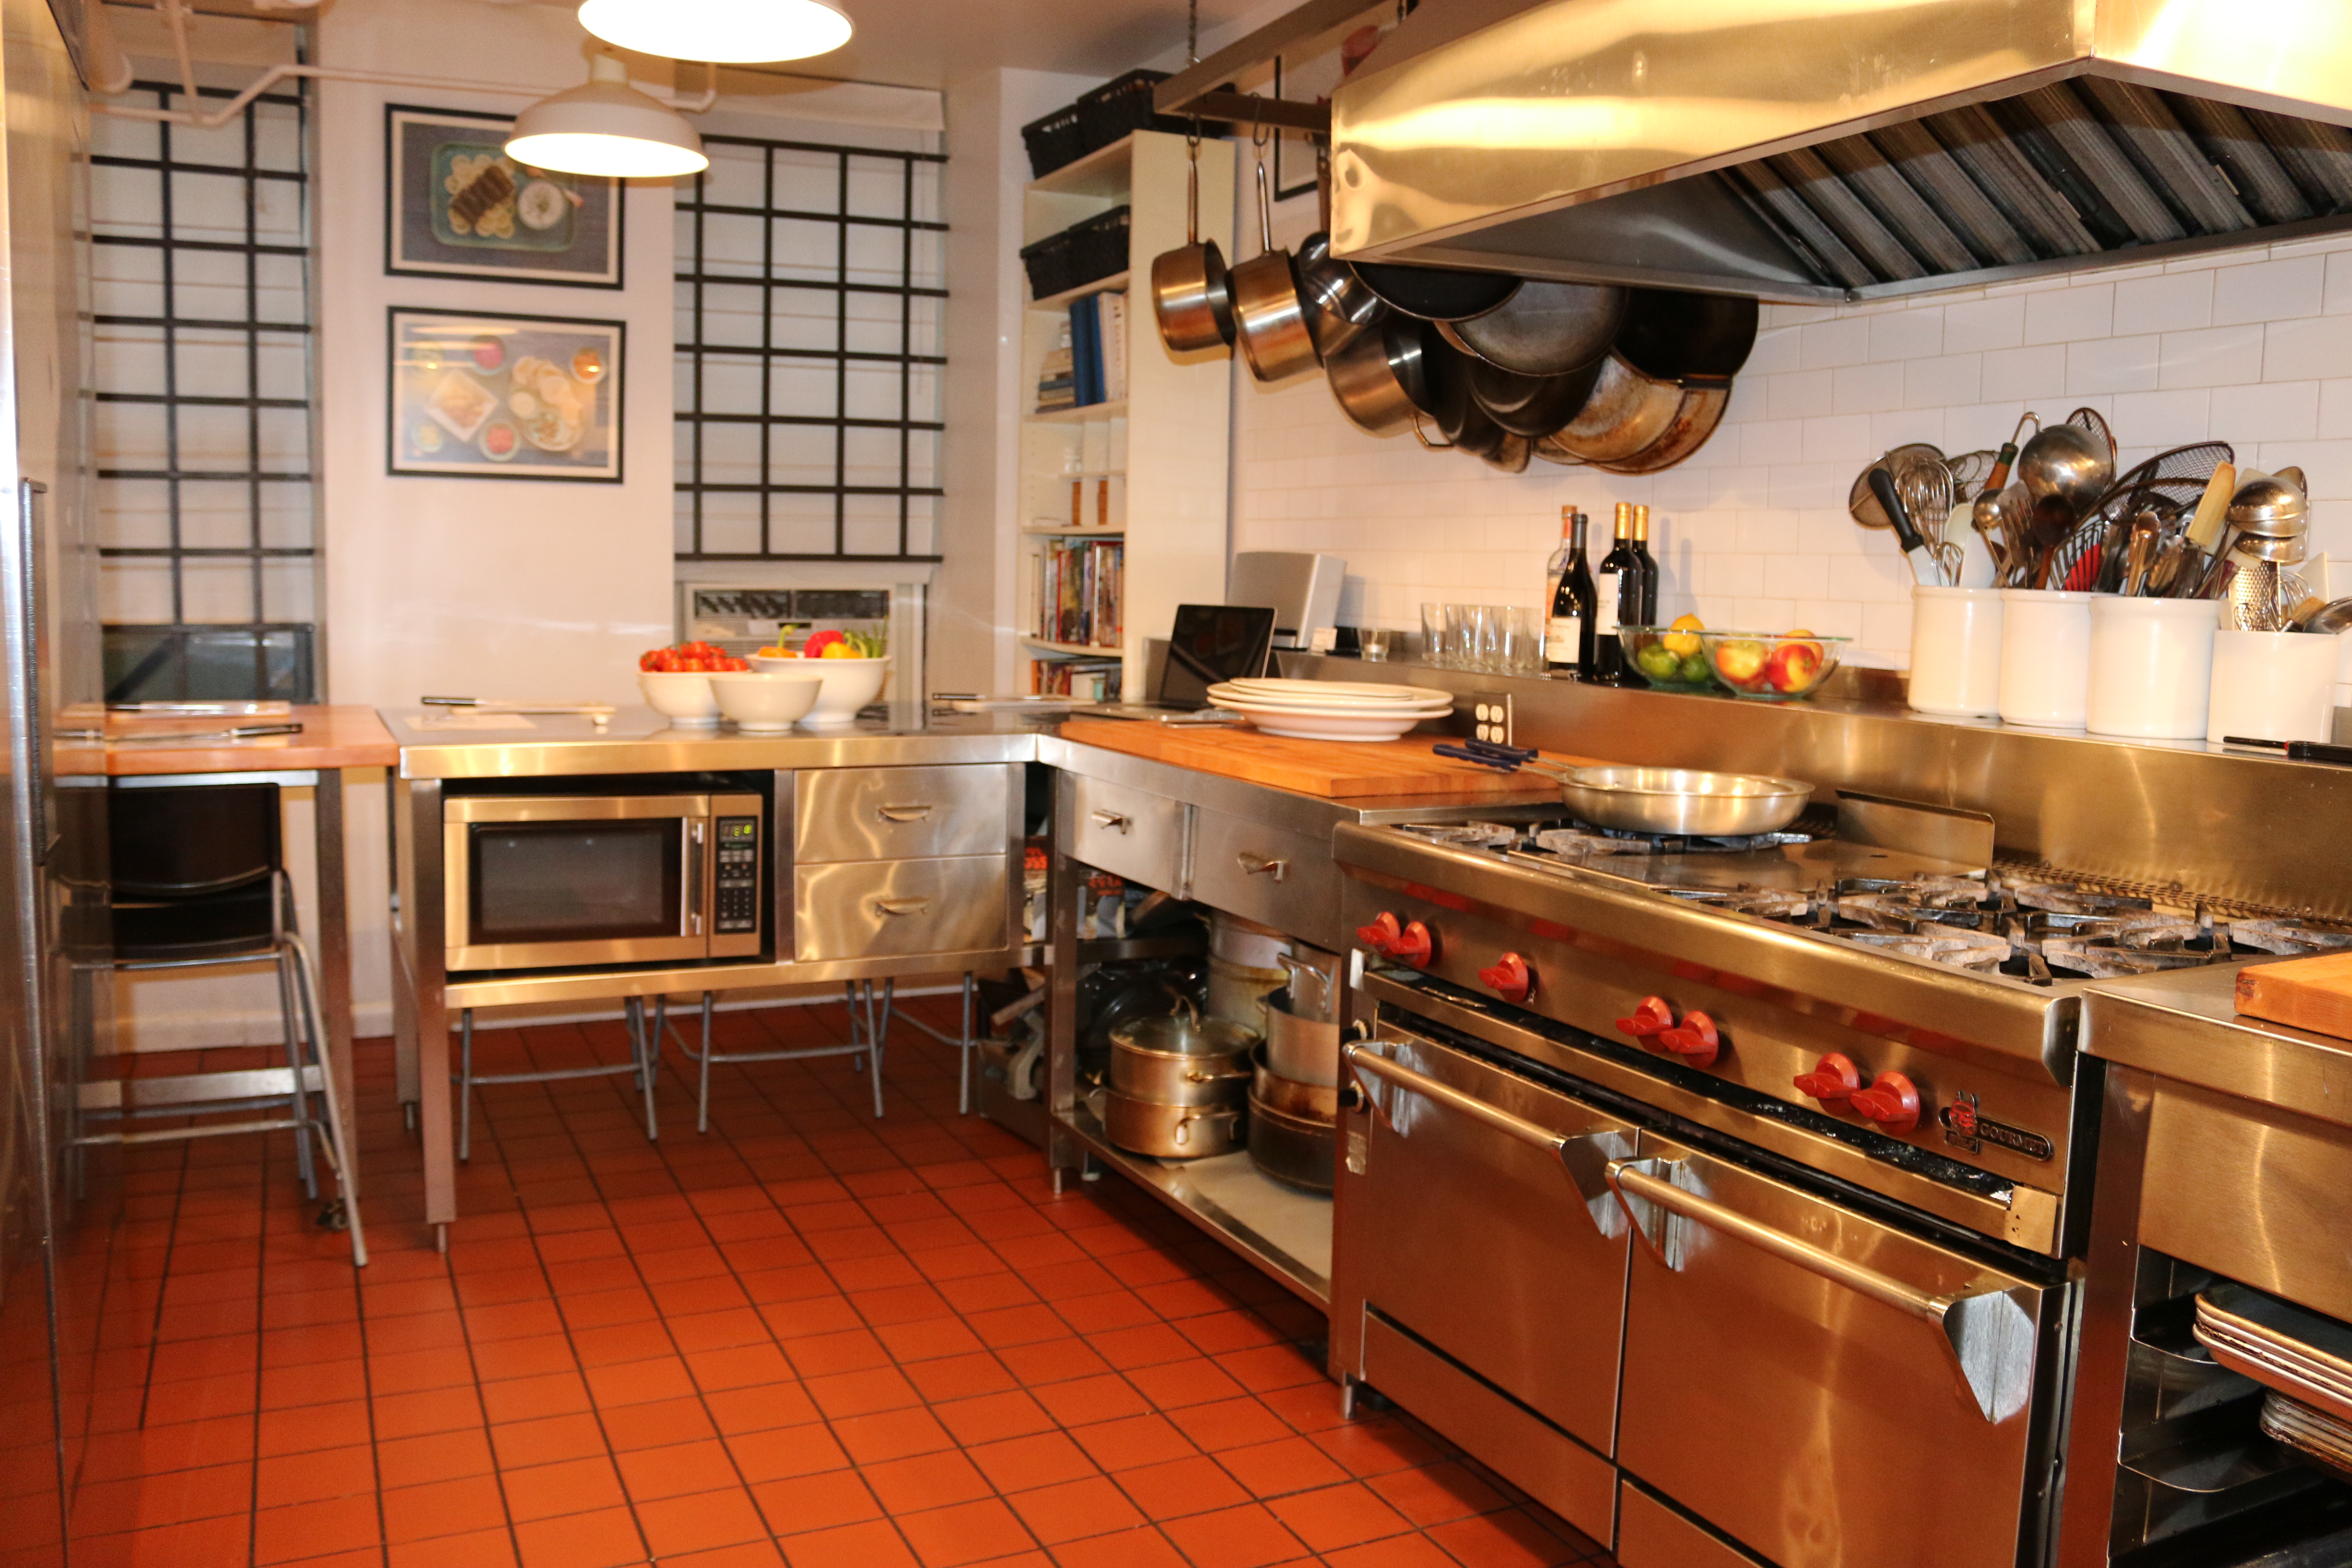 Commercial Kitchen rental